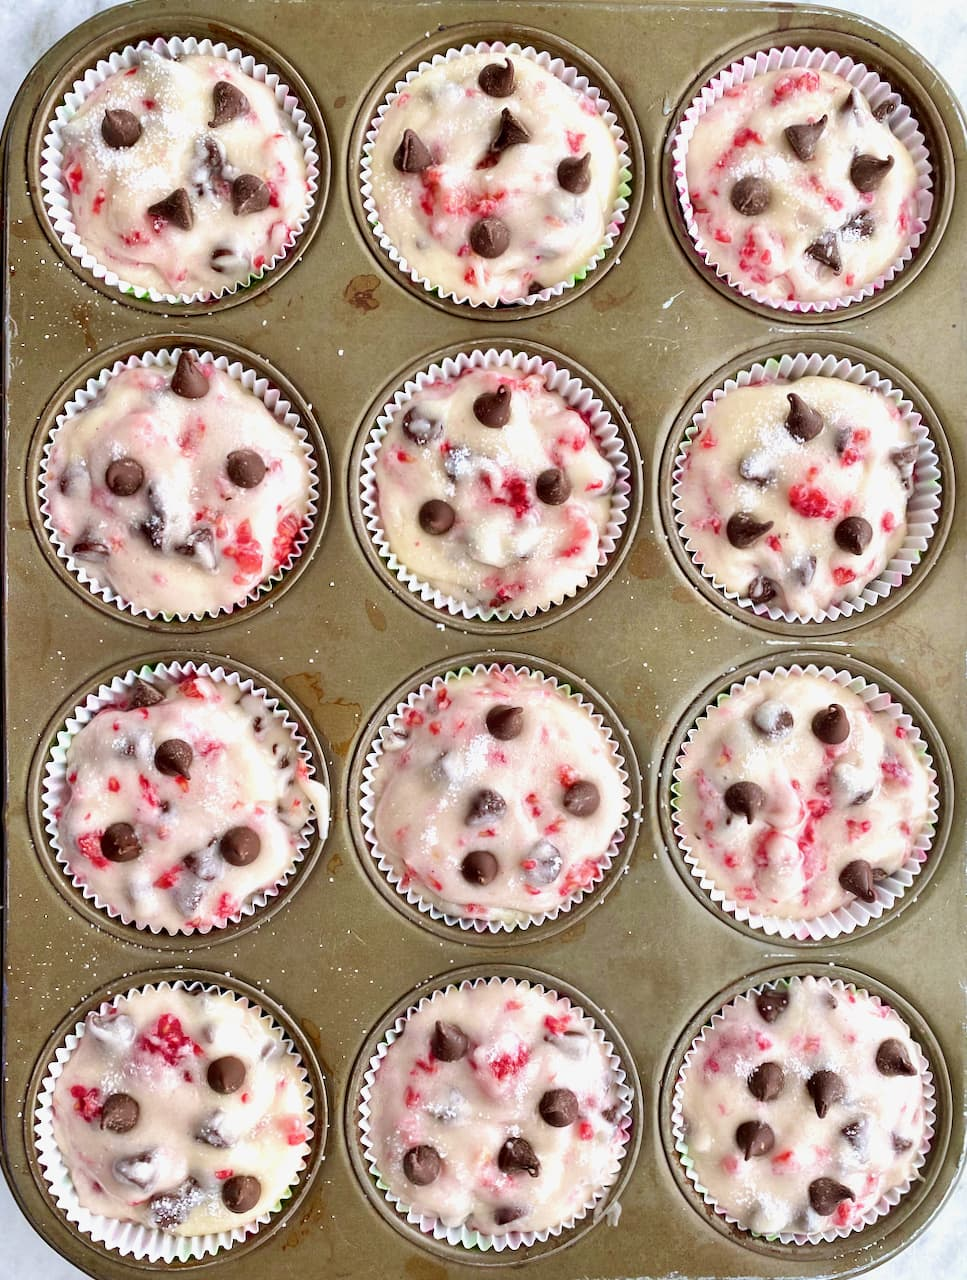 muffin tin pan filled with batter ready to go in the oven